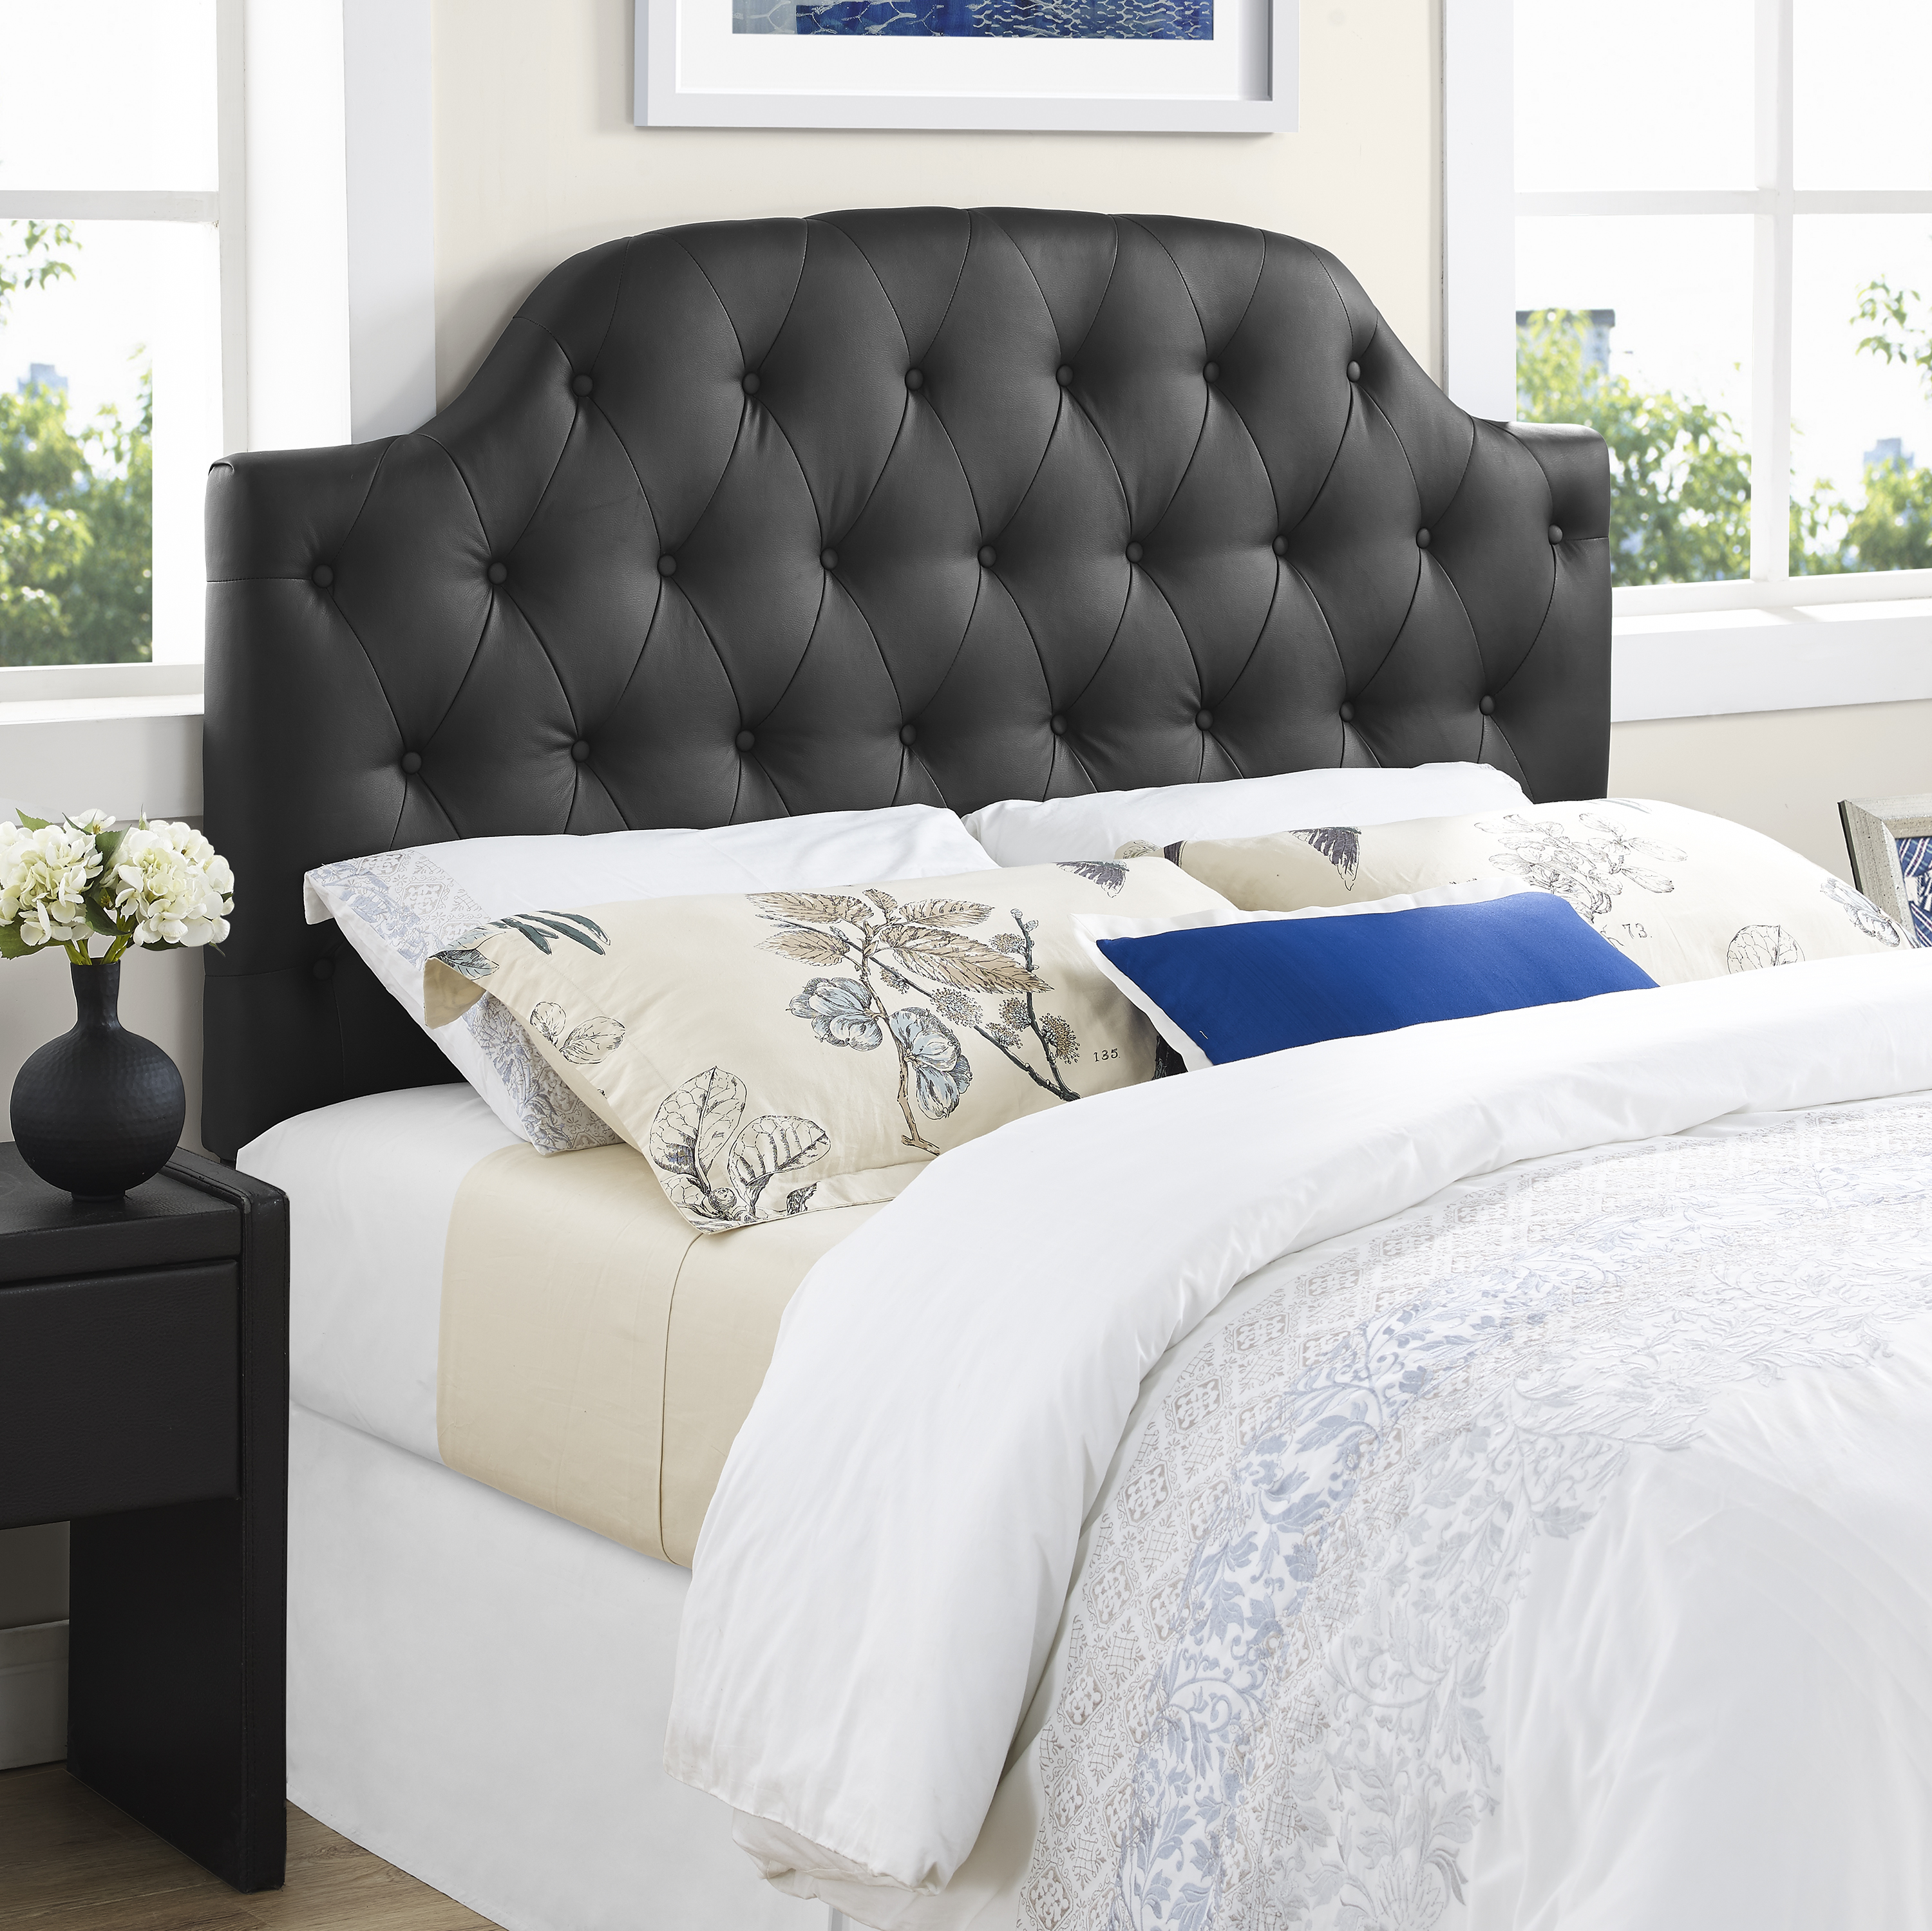 Dorel Lyric Button Tufted Faux Leather Headboard Multiple Sizes & Colors